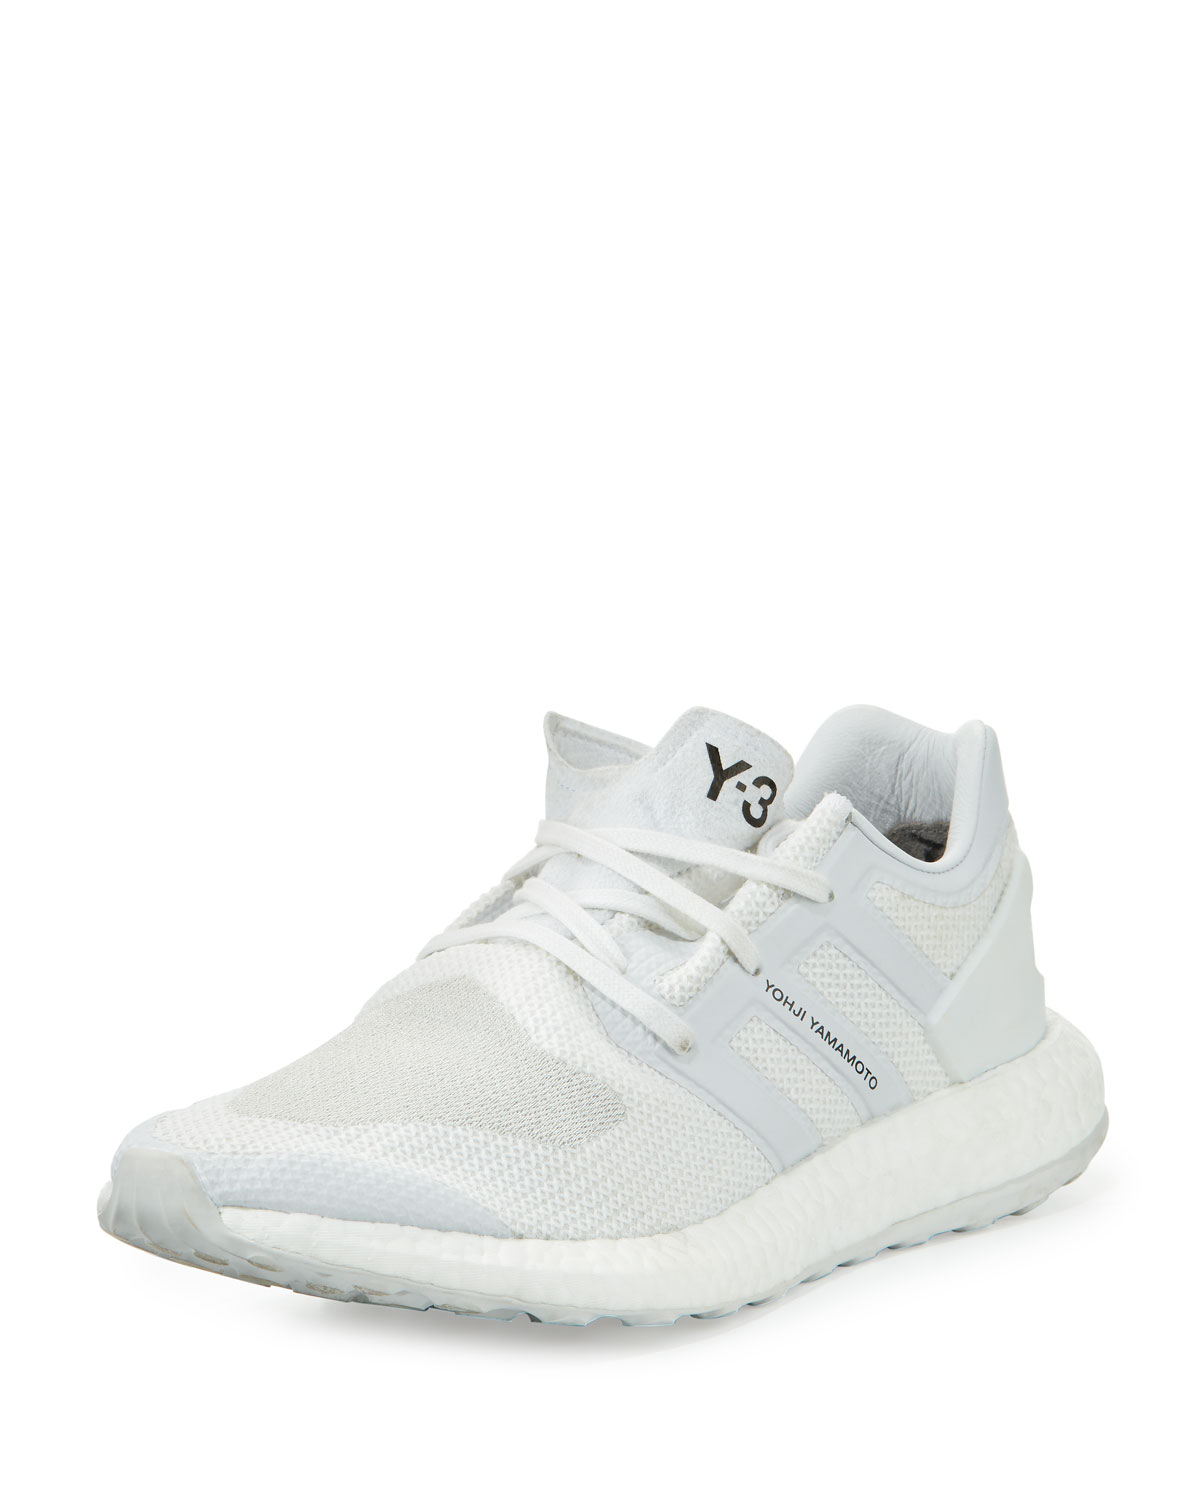 333bfbb61 Y-3 Men s Pure Boost Mesh Sneaker